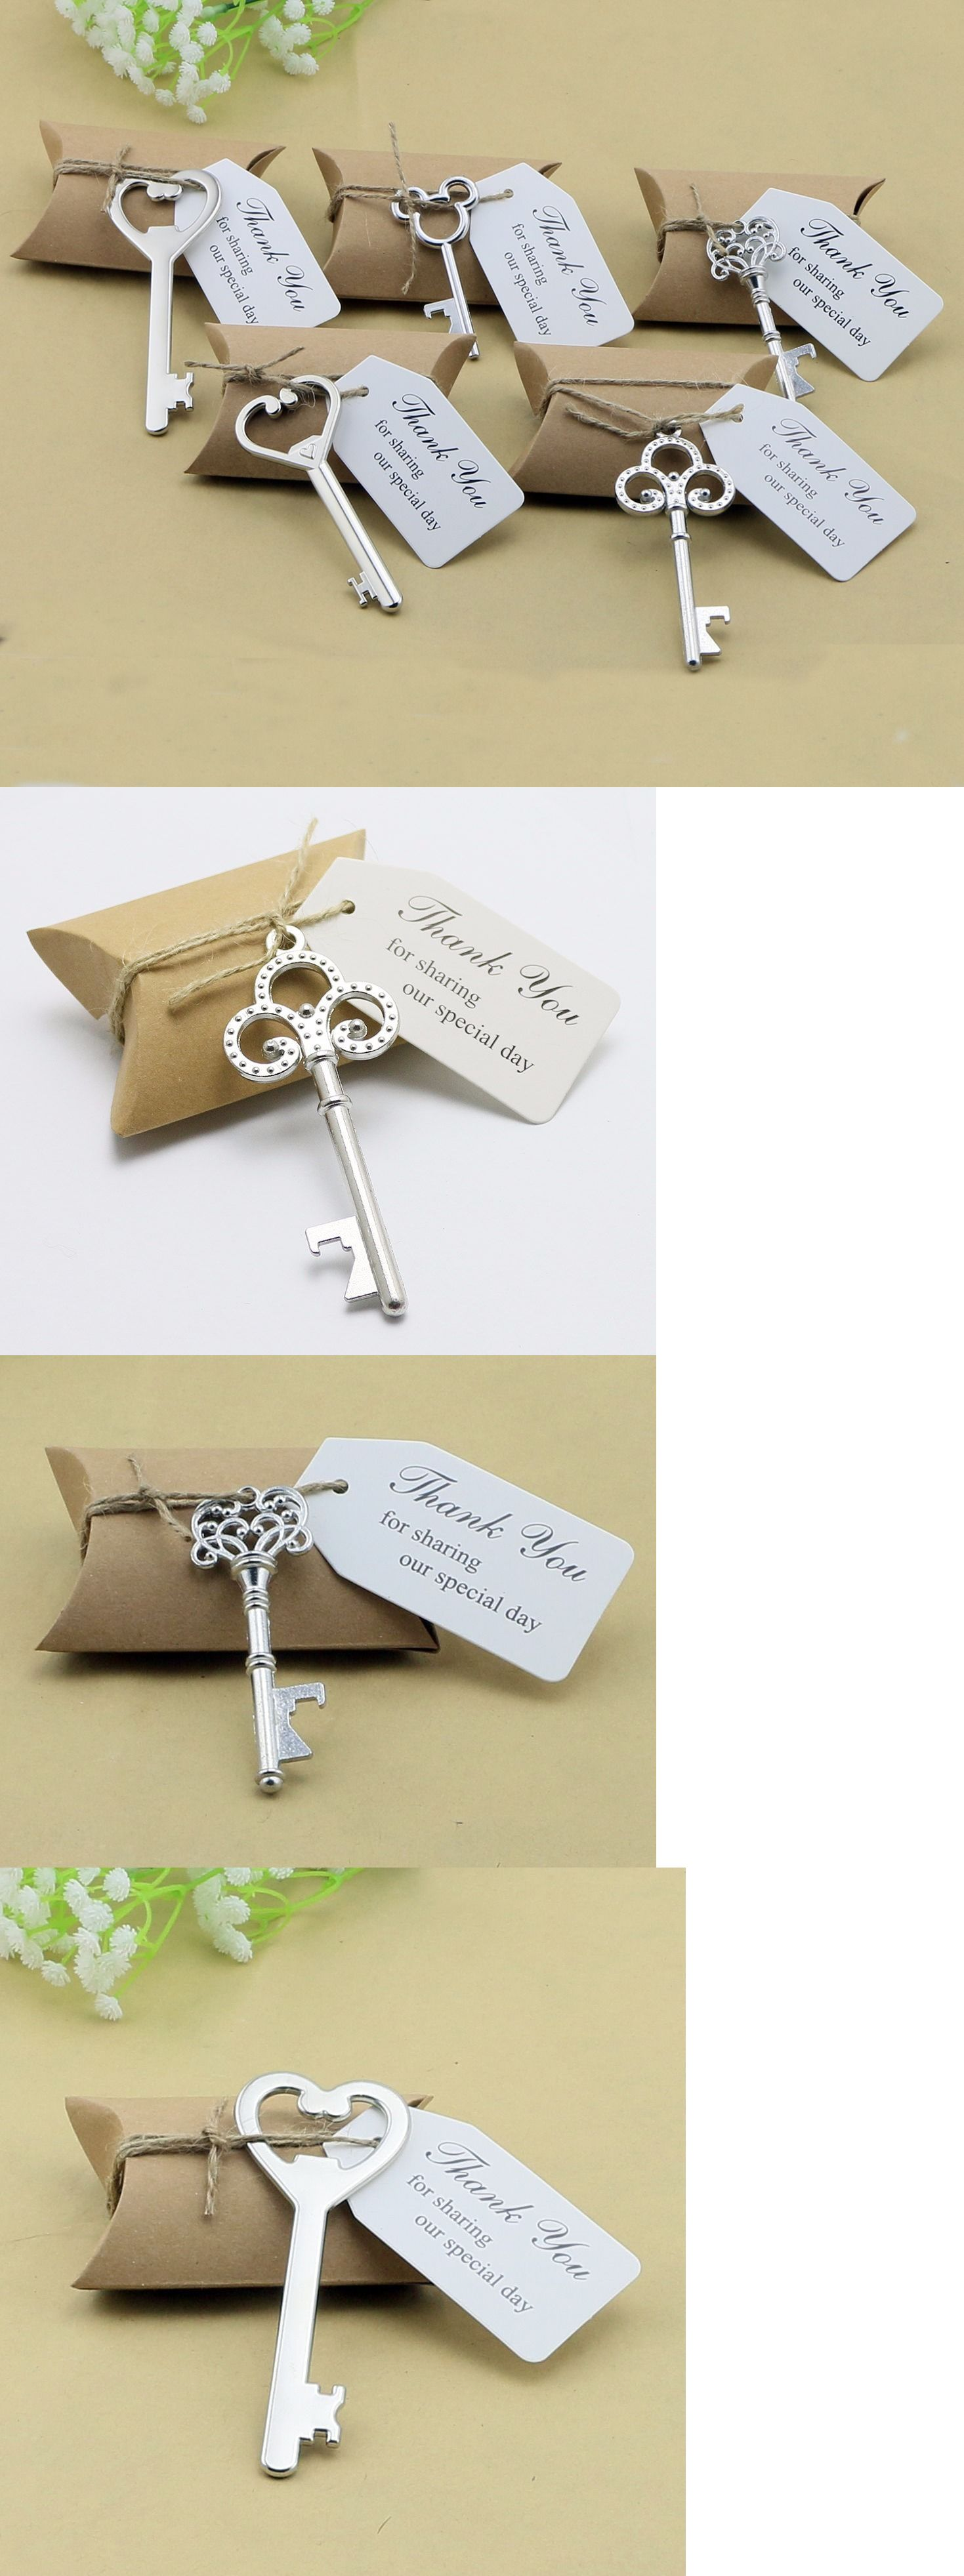 Wedding Favors 33156: 50 Wedding Favors Candy Boxes W Mixed Silver ...